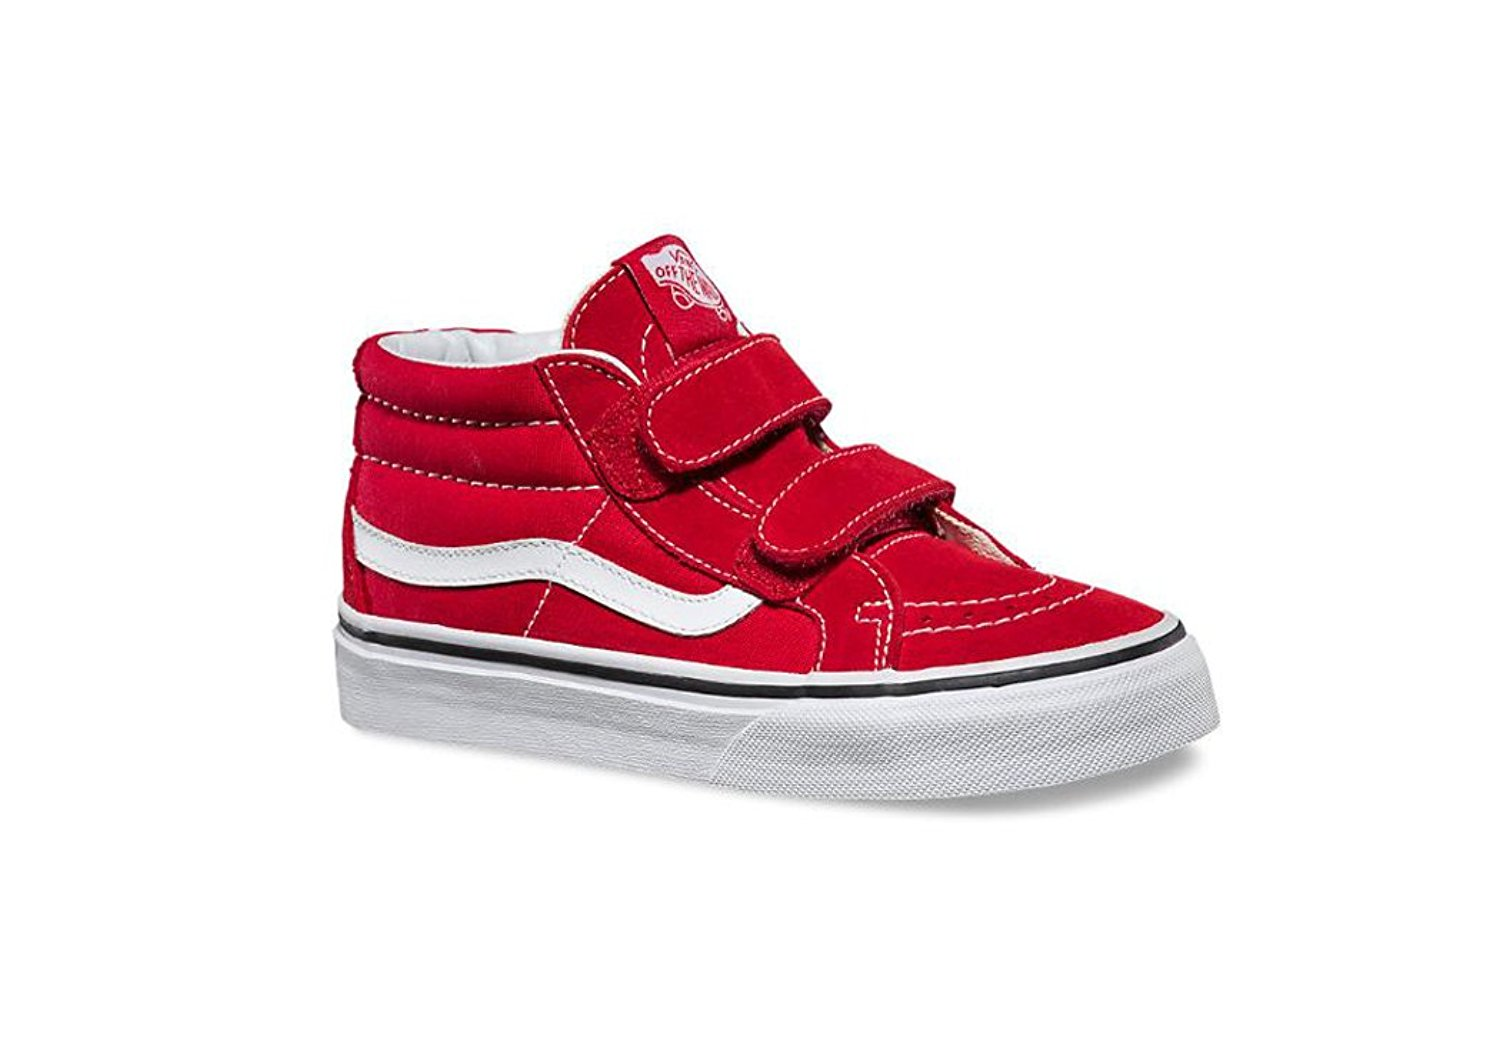 c280465647 Get Quotations · Vans Kids Sk8-Mid Reissue V Skate Shoe